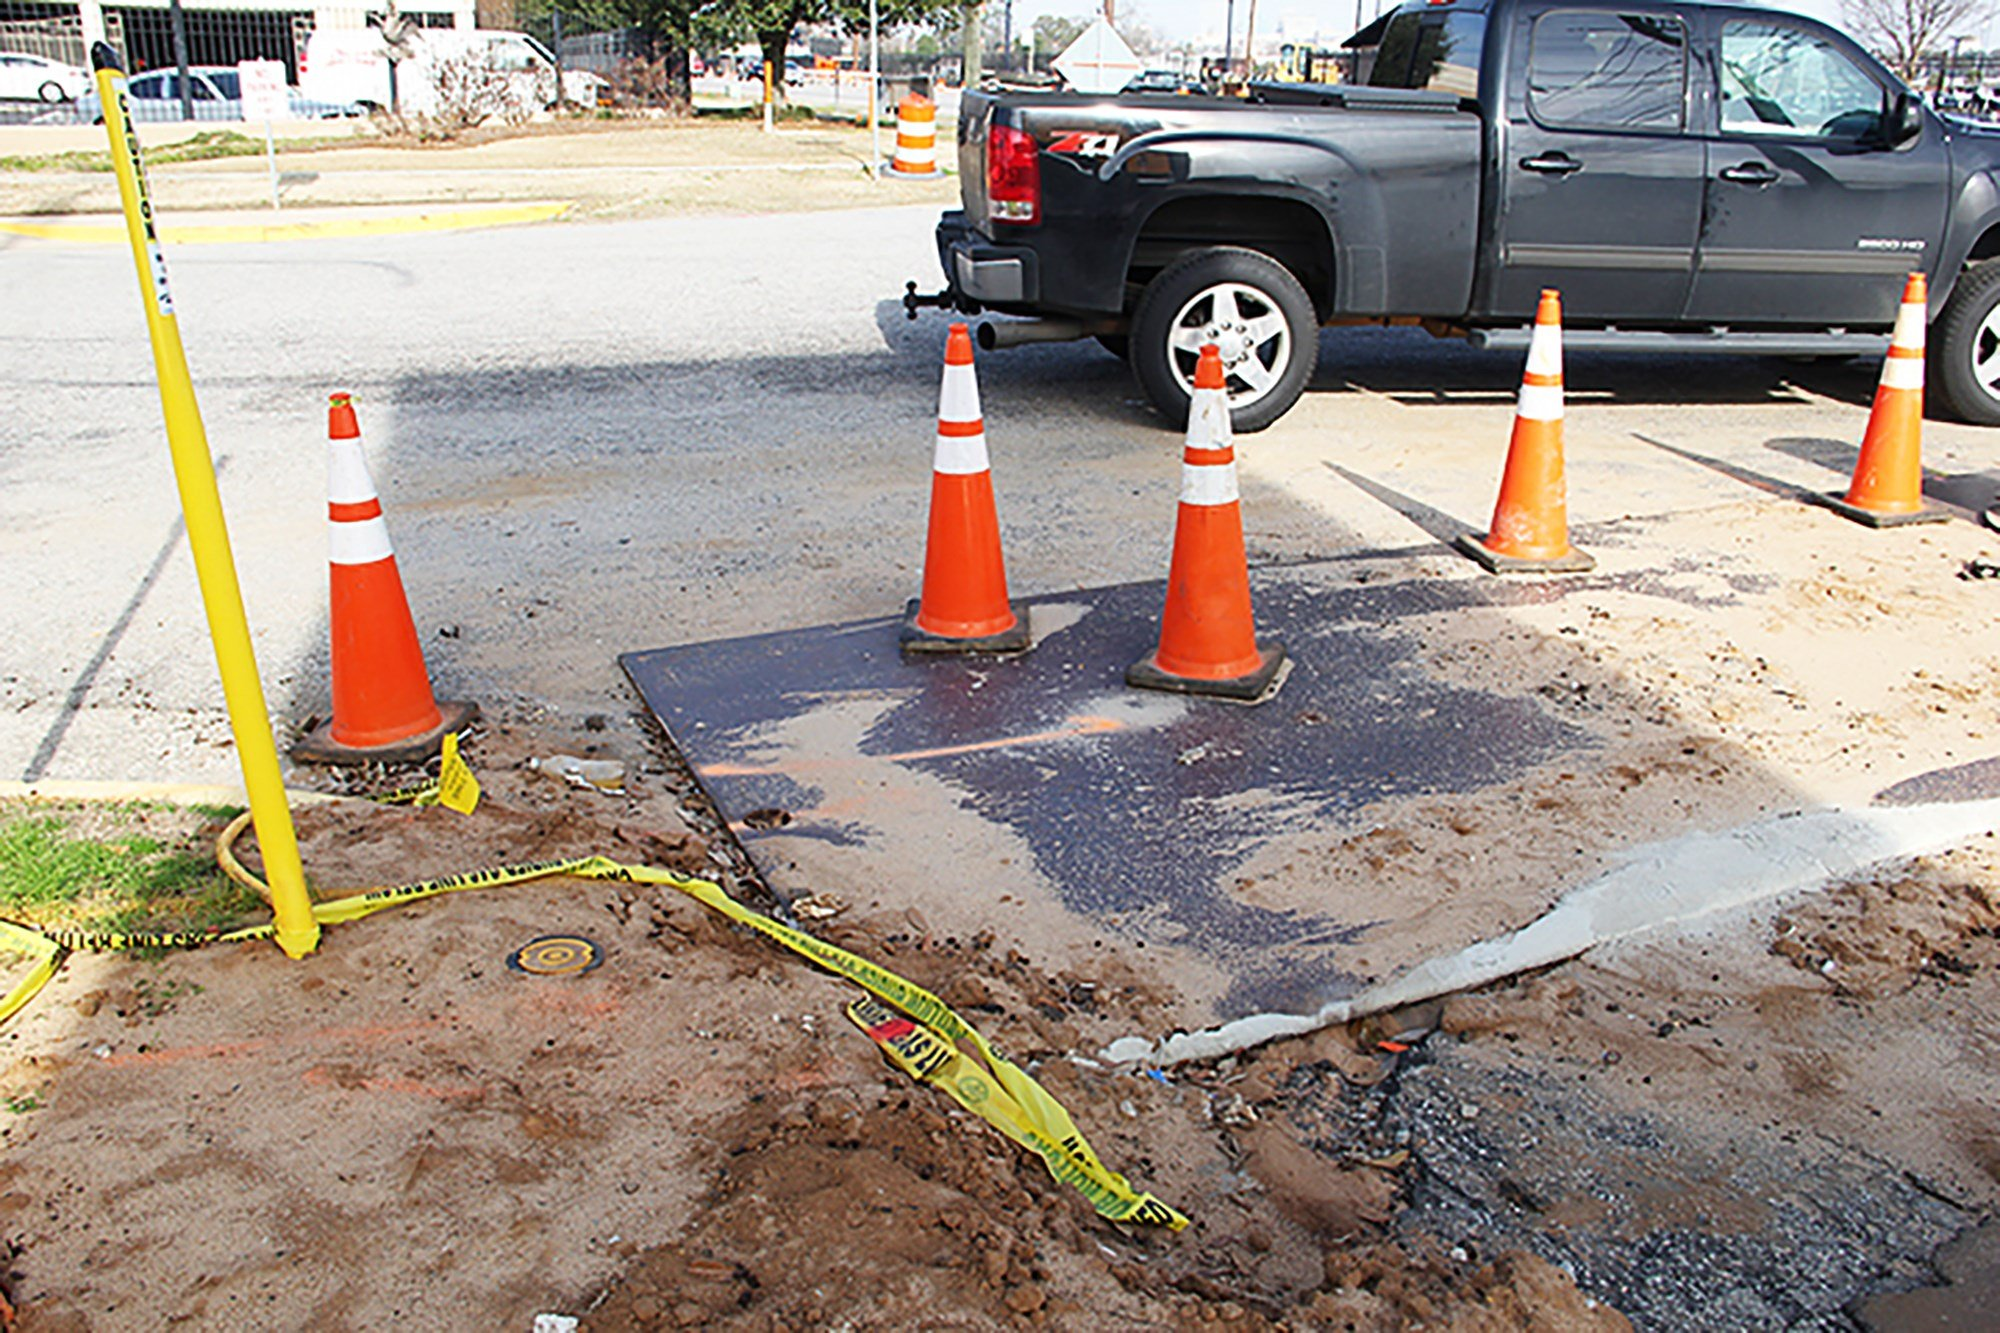 Gov. McMaster's request for federal aid will allot $2 billion towards paving and repairing South Carolina's interstate systems and primary roads. This area, the corner of Hemlock Road and Bluff Road, is already being worked on by the highway department.